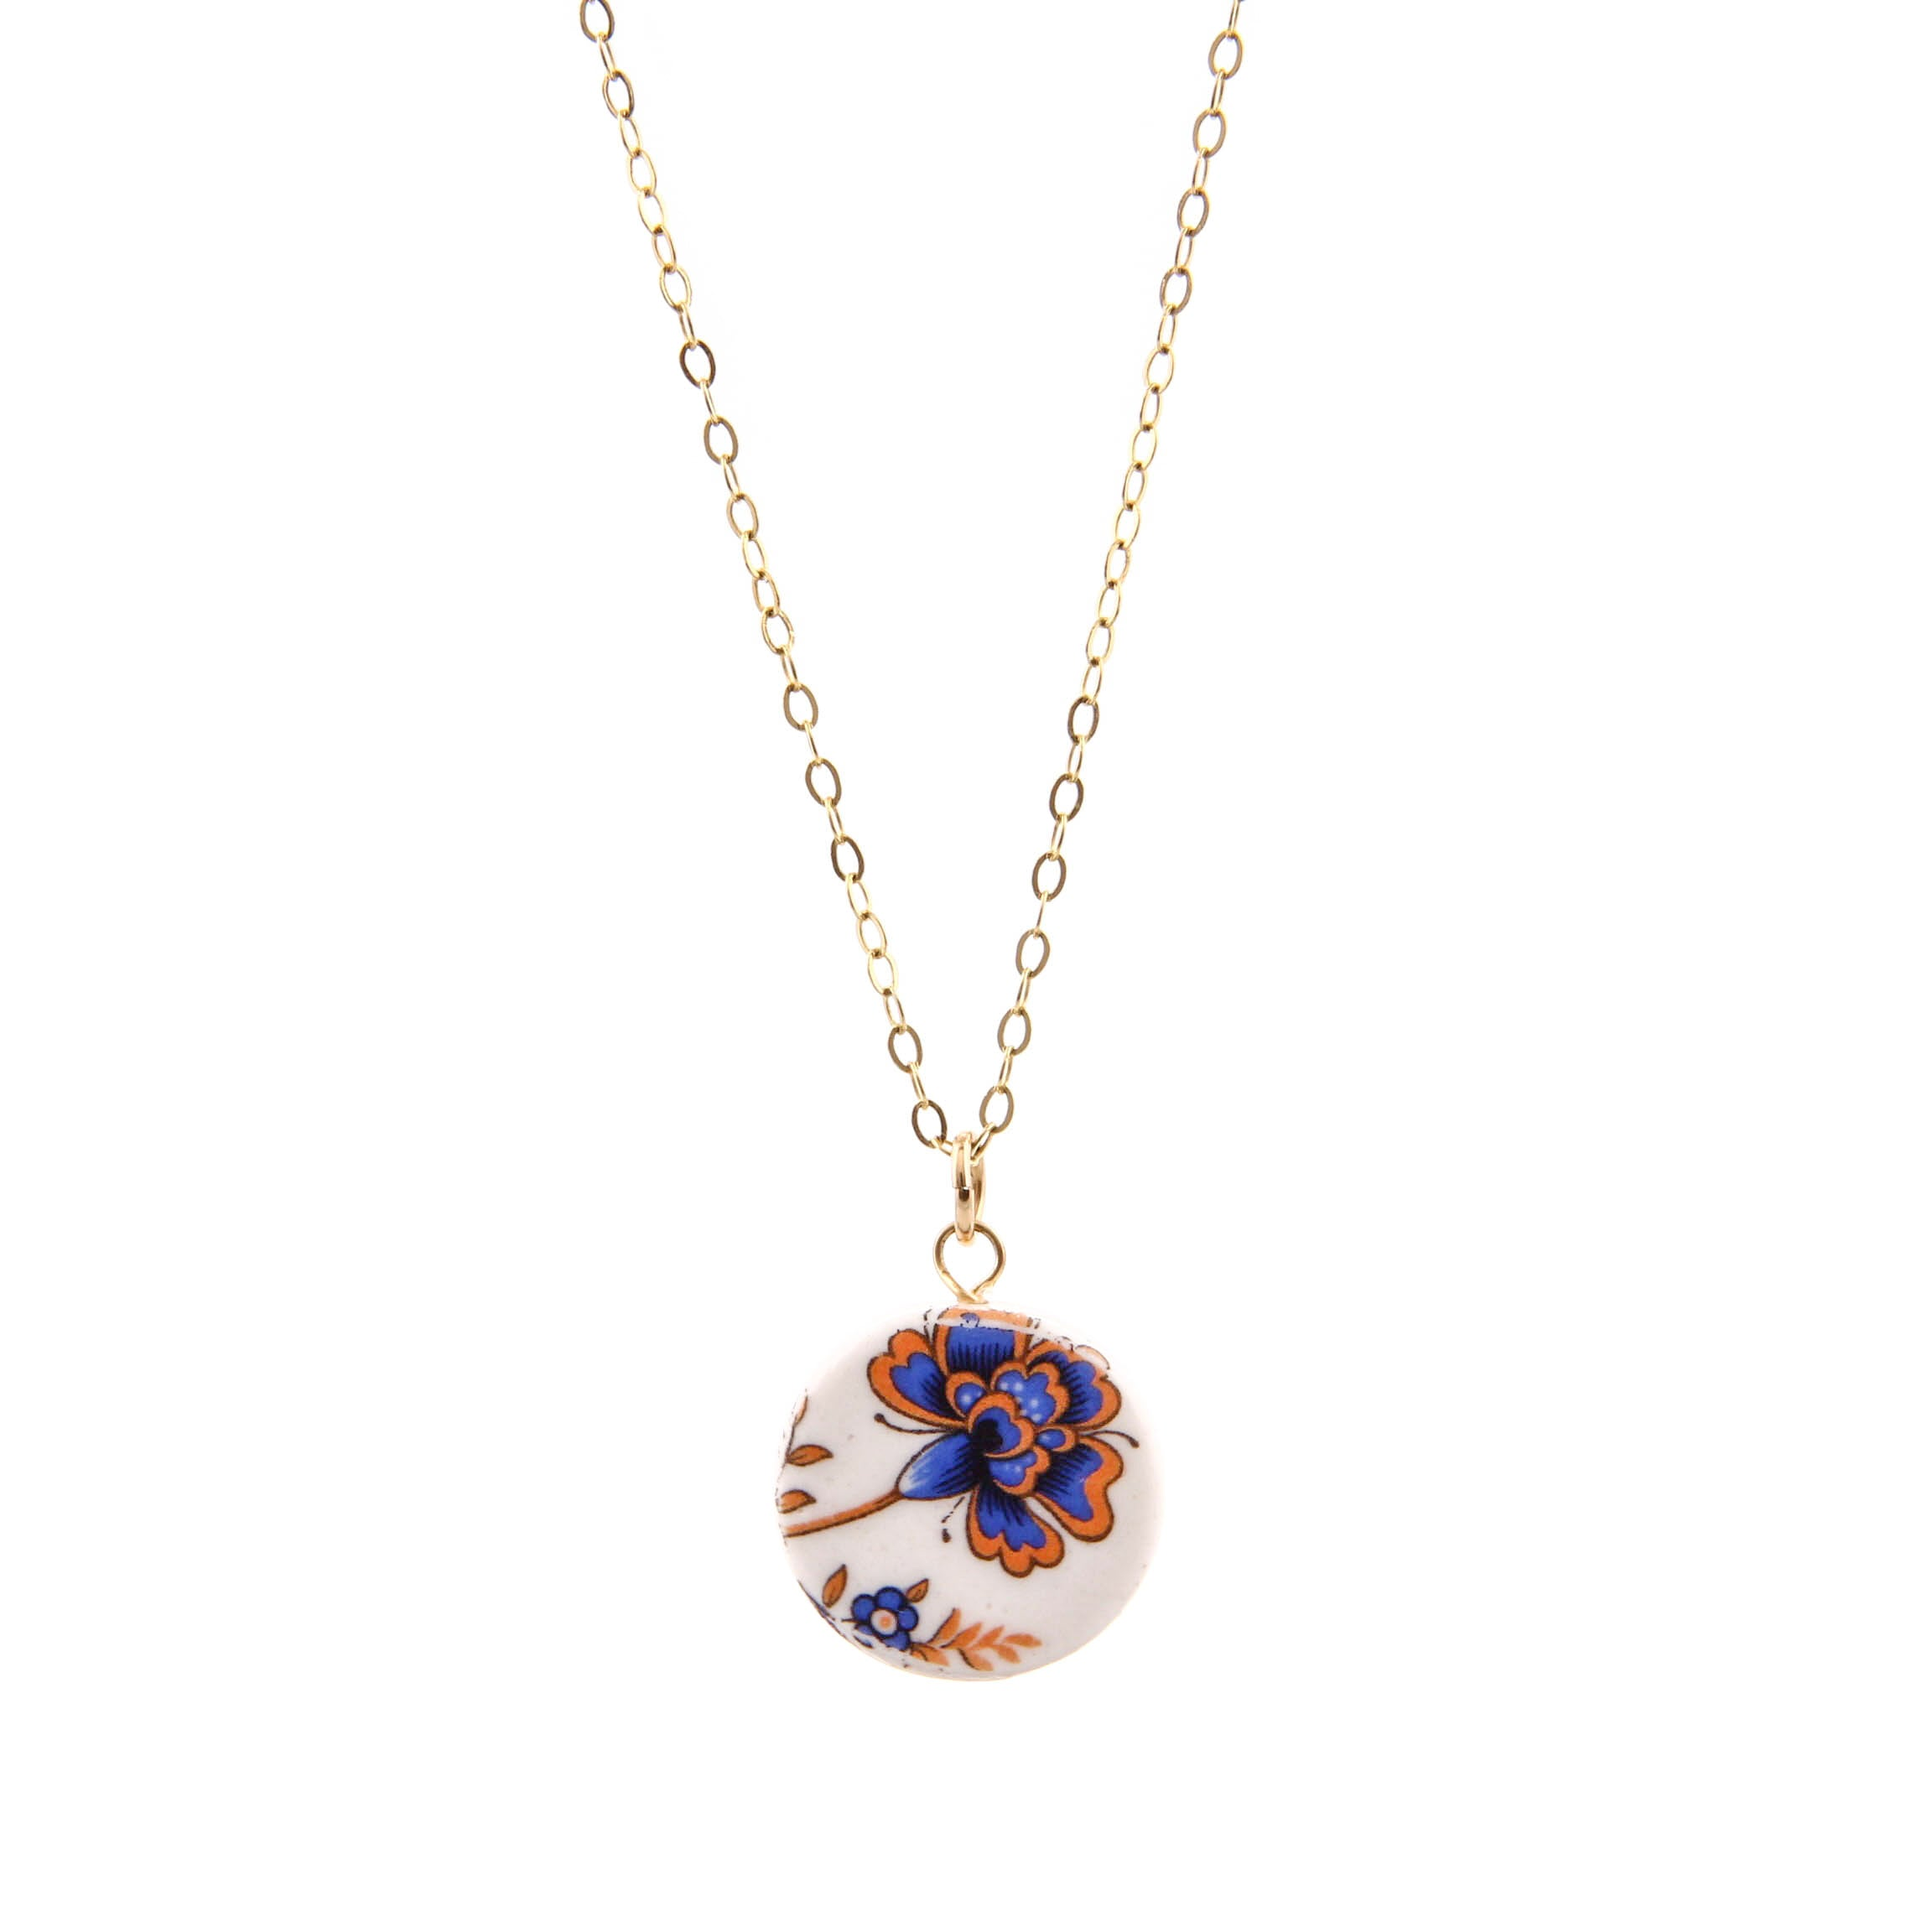 Melanie Sherman, Blue Flower on White Porcelain Necklace